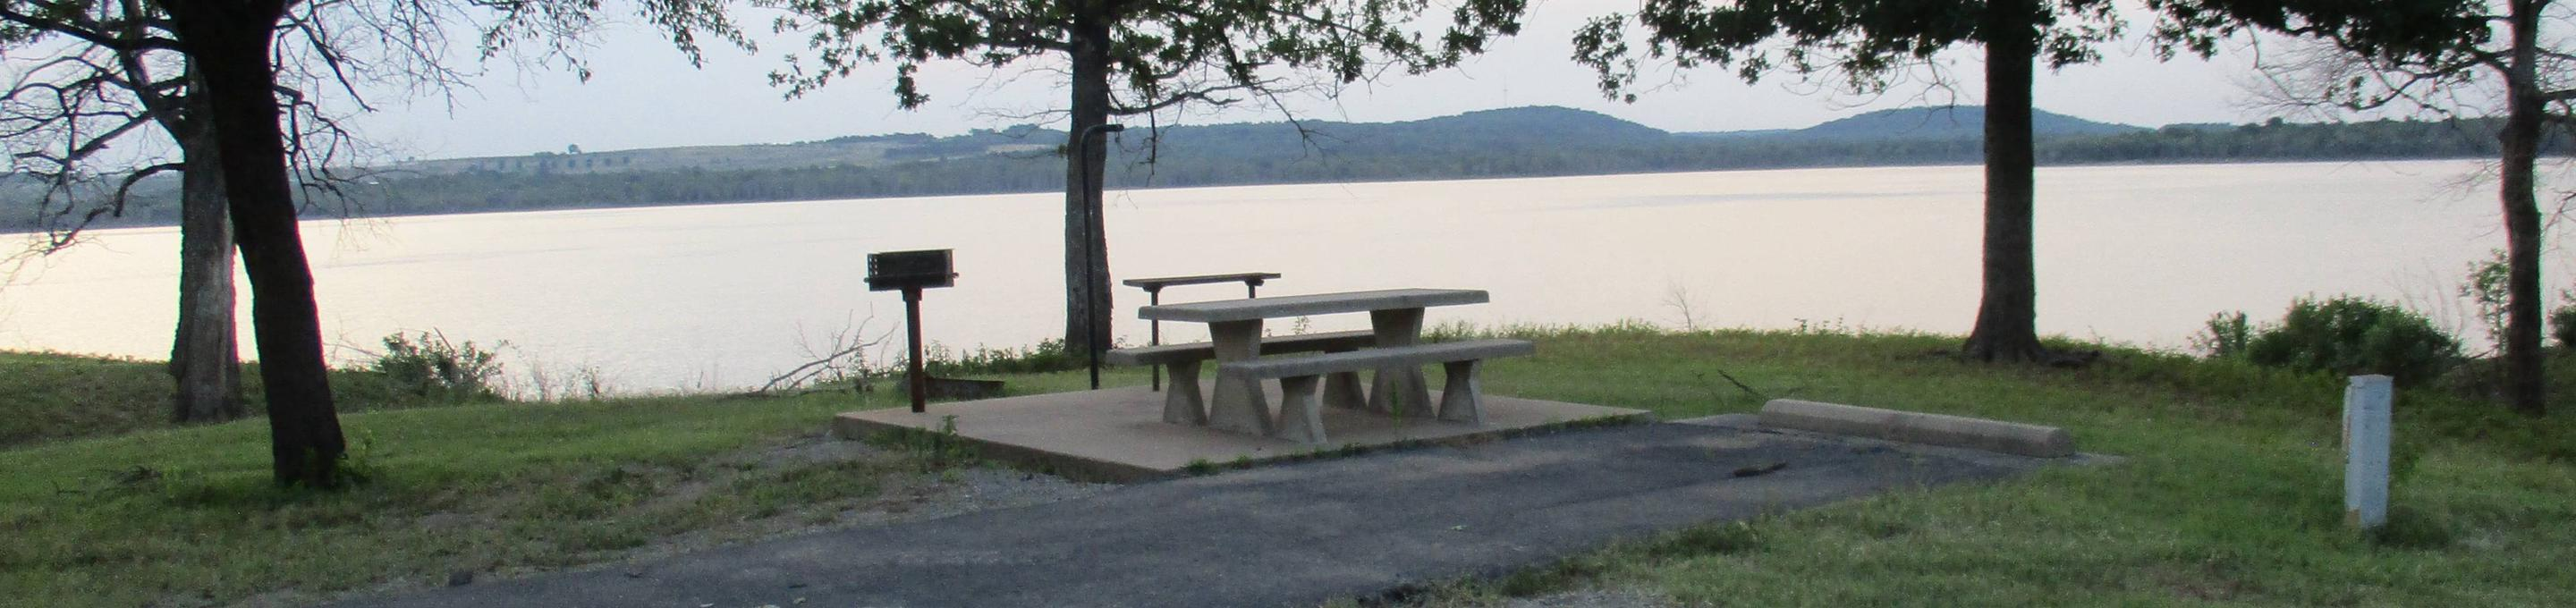 Site 17 - WildwoodSite 17 offers an excellent lake view and partial shade.